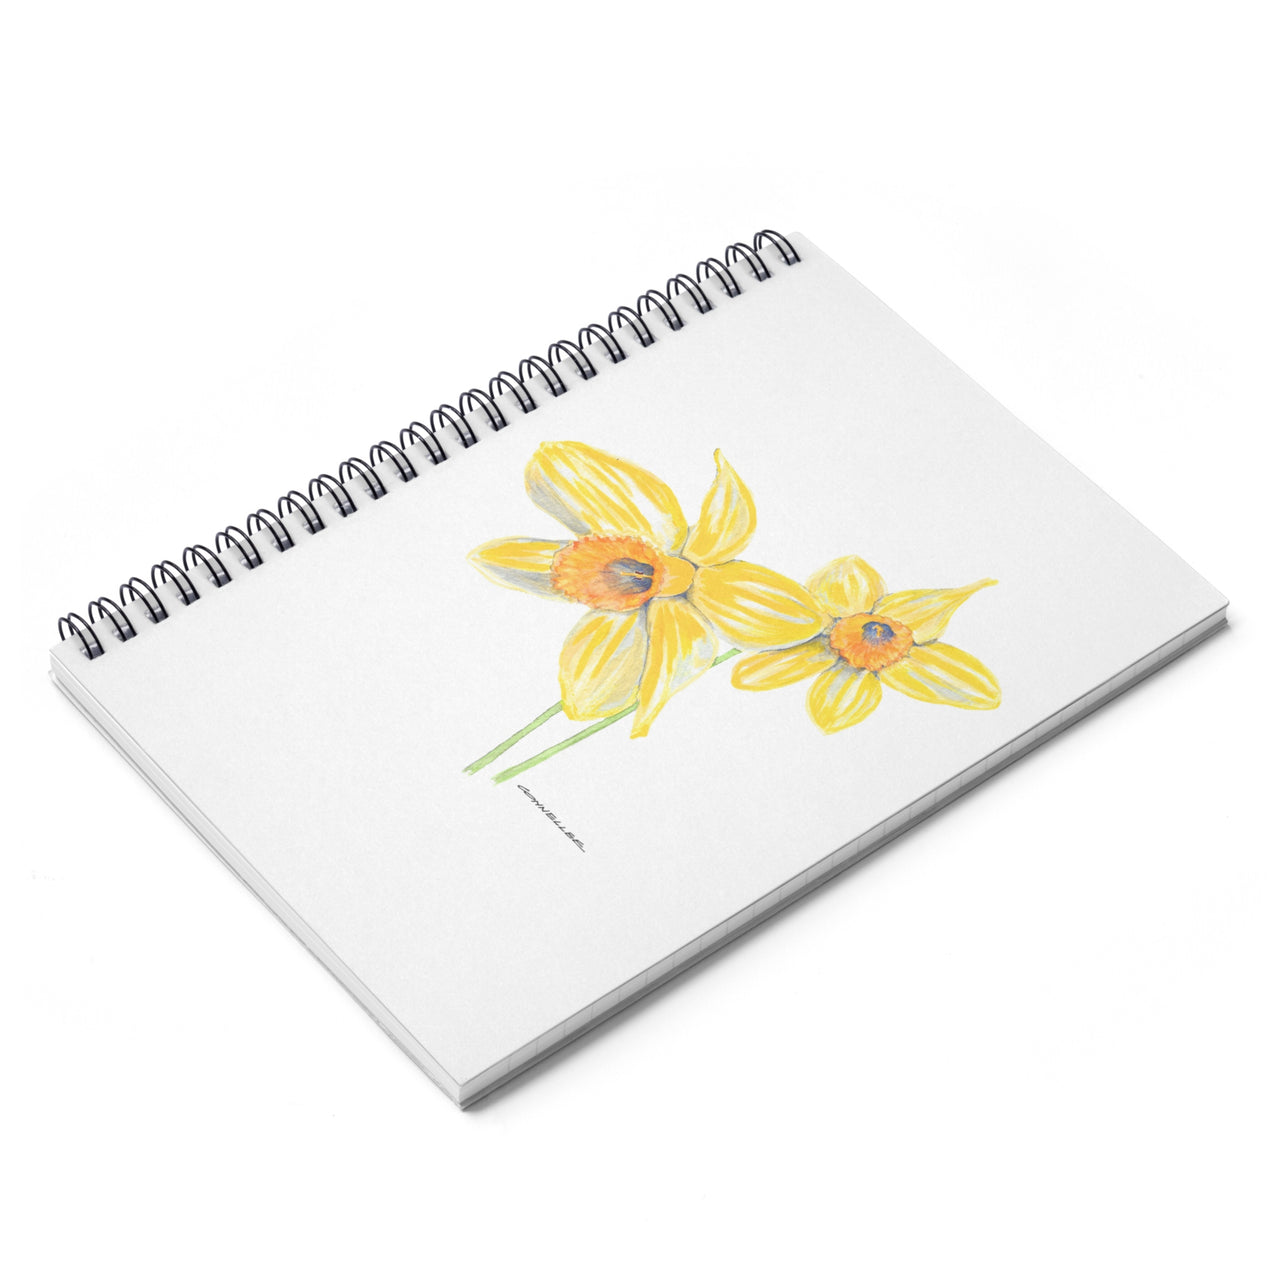 Journal - Yellow Daffodil Spiral Notebook - Ruled Line - Falling Leaf Card Co.